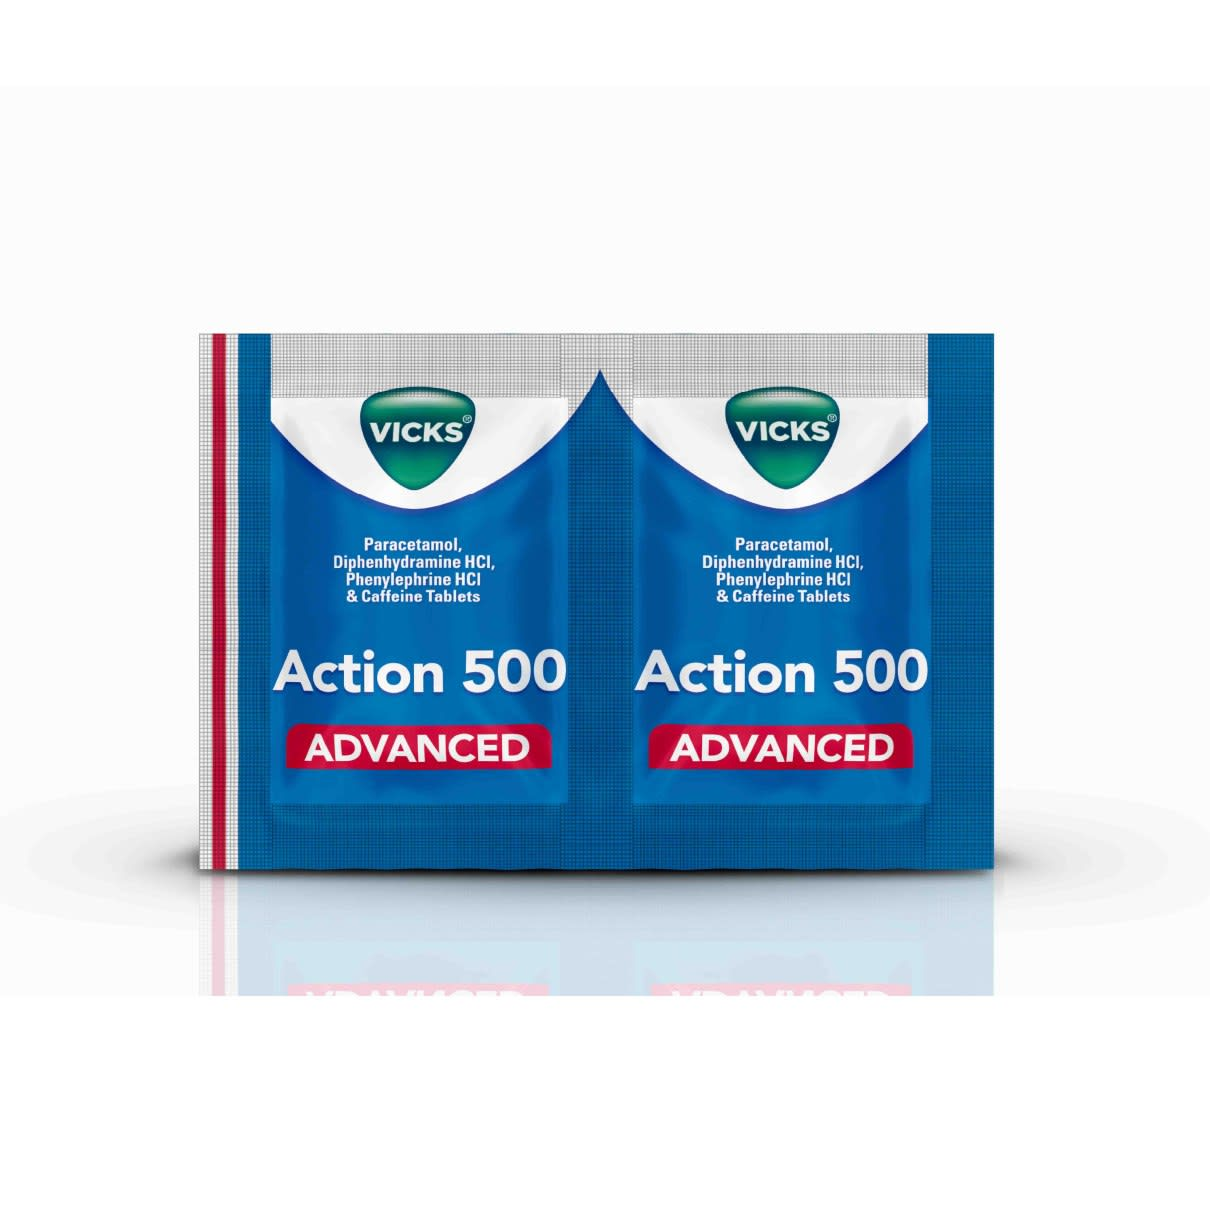 Vicks Action 500 Advanced